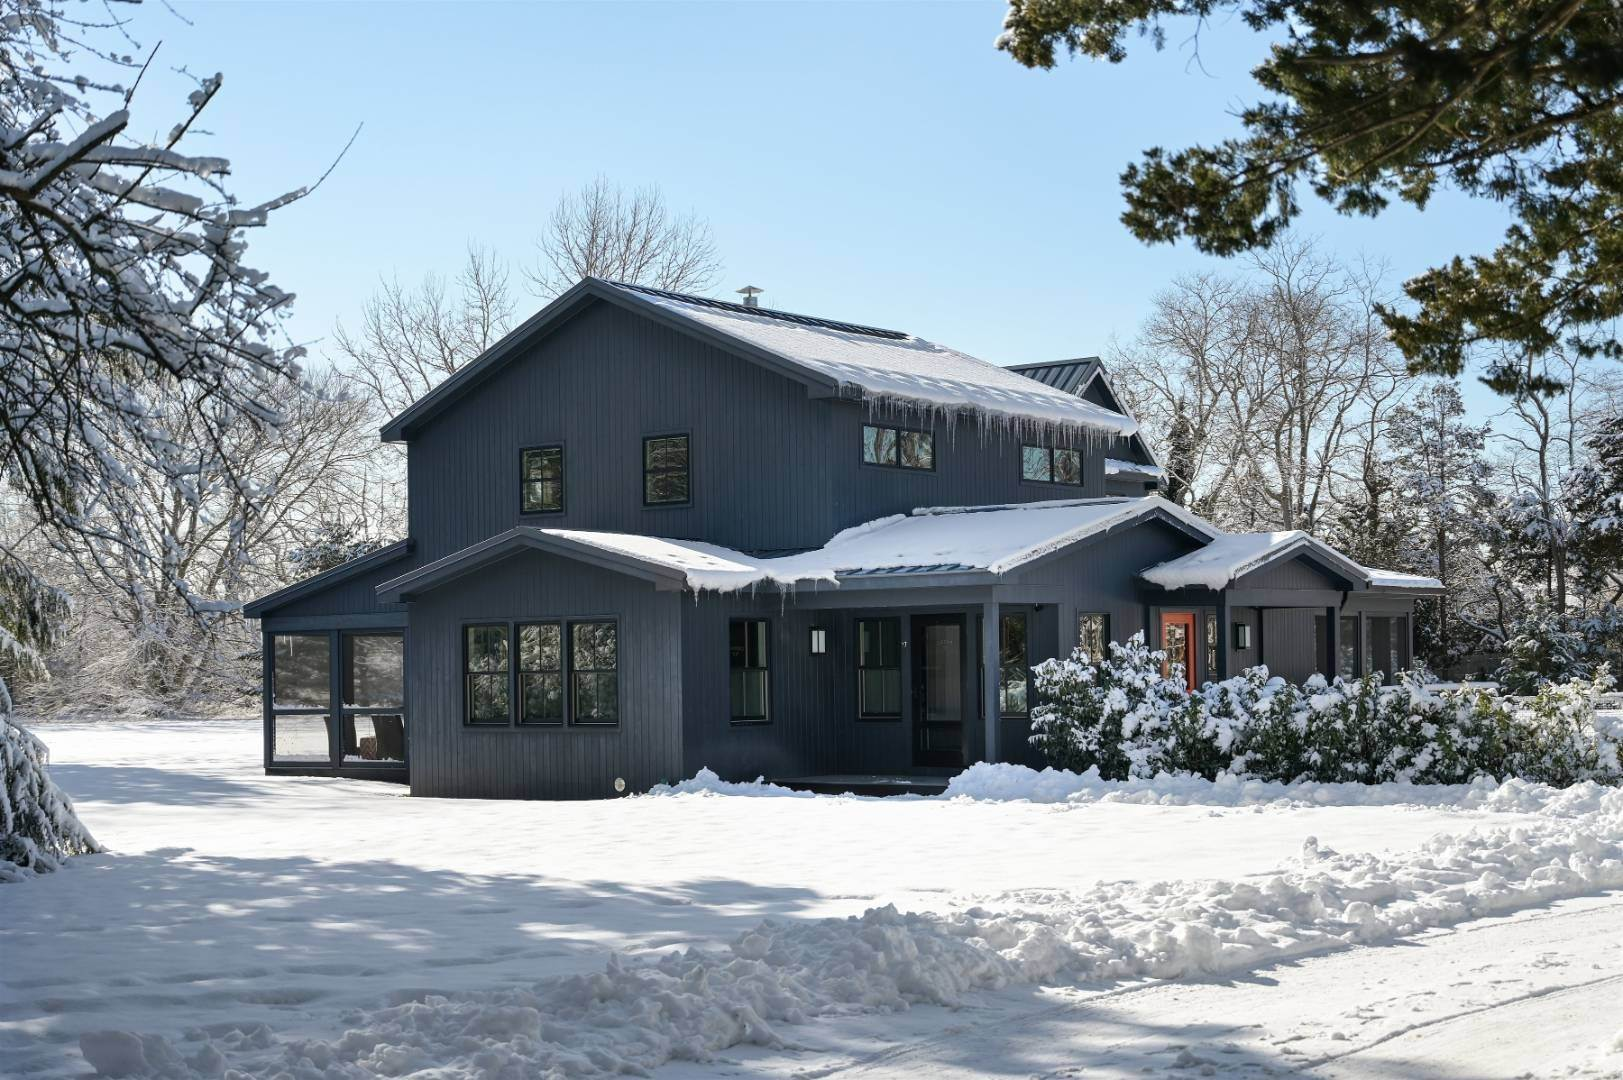 Single Family Home for Sale at Chic Luxury Living On Over 2 Acres 17 And 19 Cedar Lane, Remsenburg, NY 11960